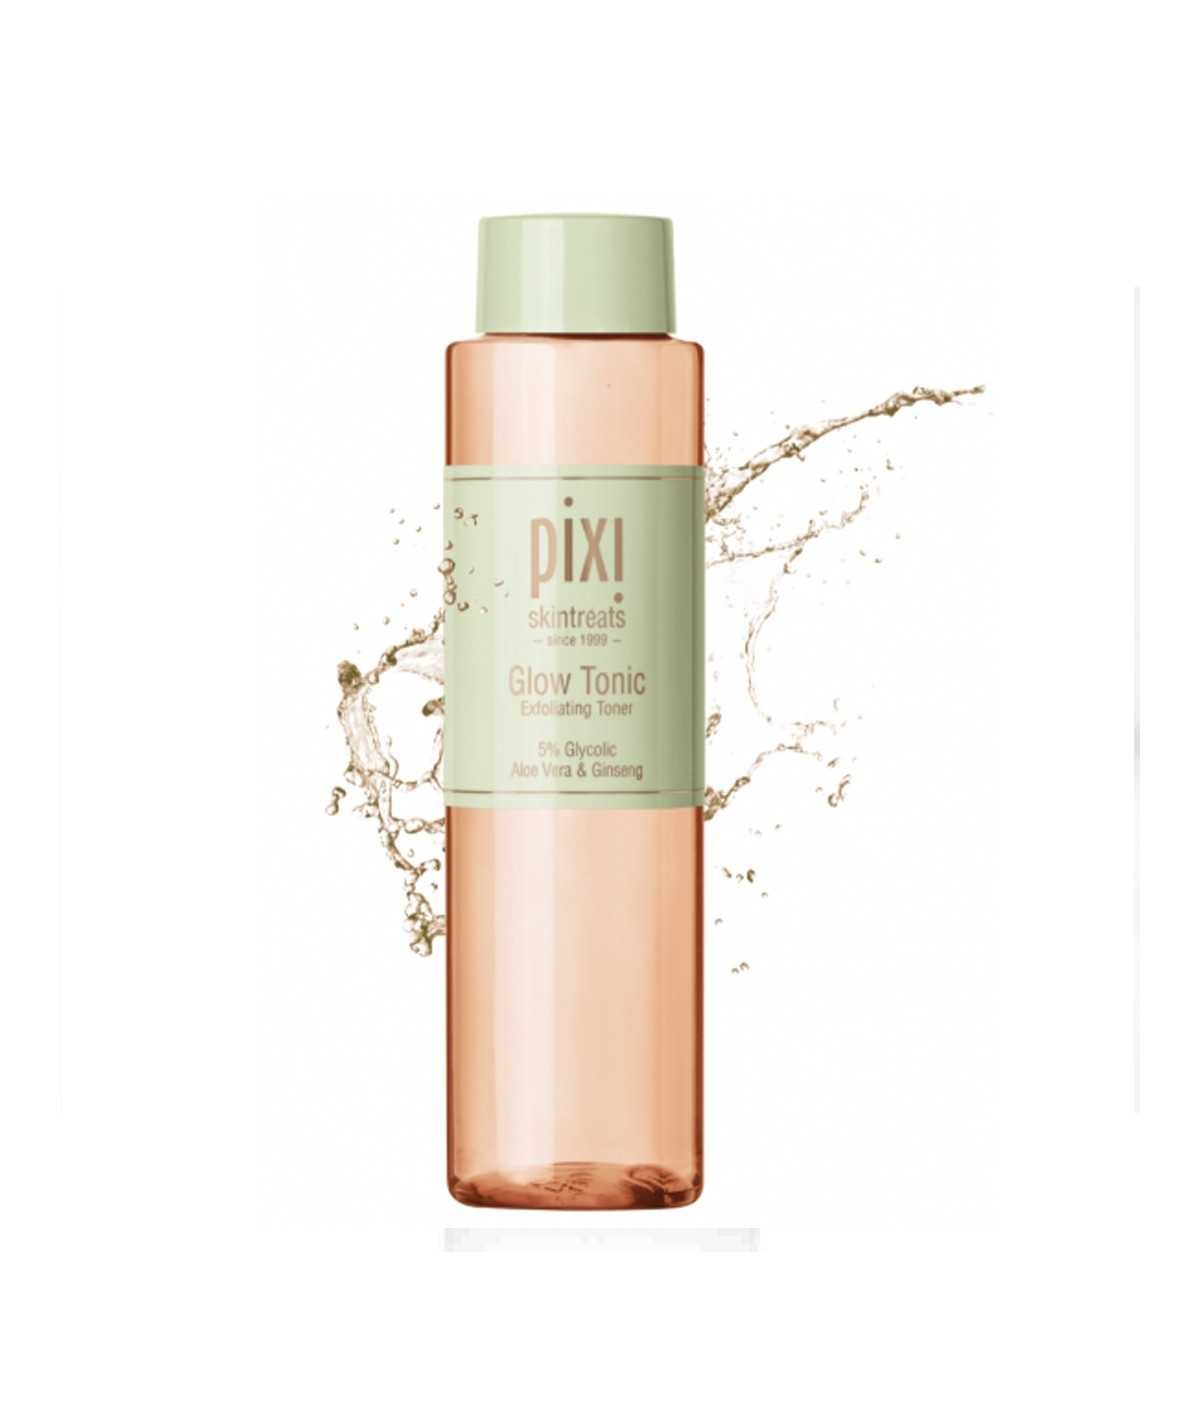 Pixi Beauty Glow Tonic, Exfoliating Toner, 250ML